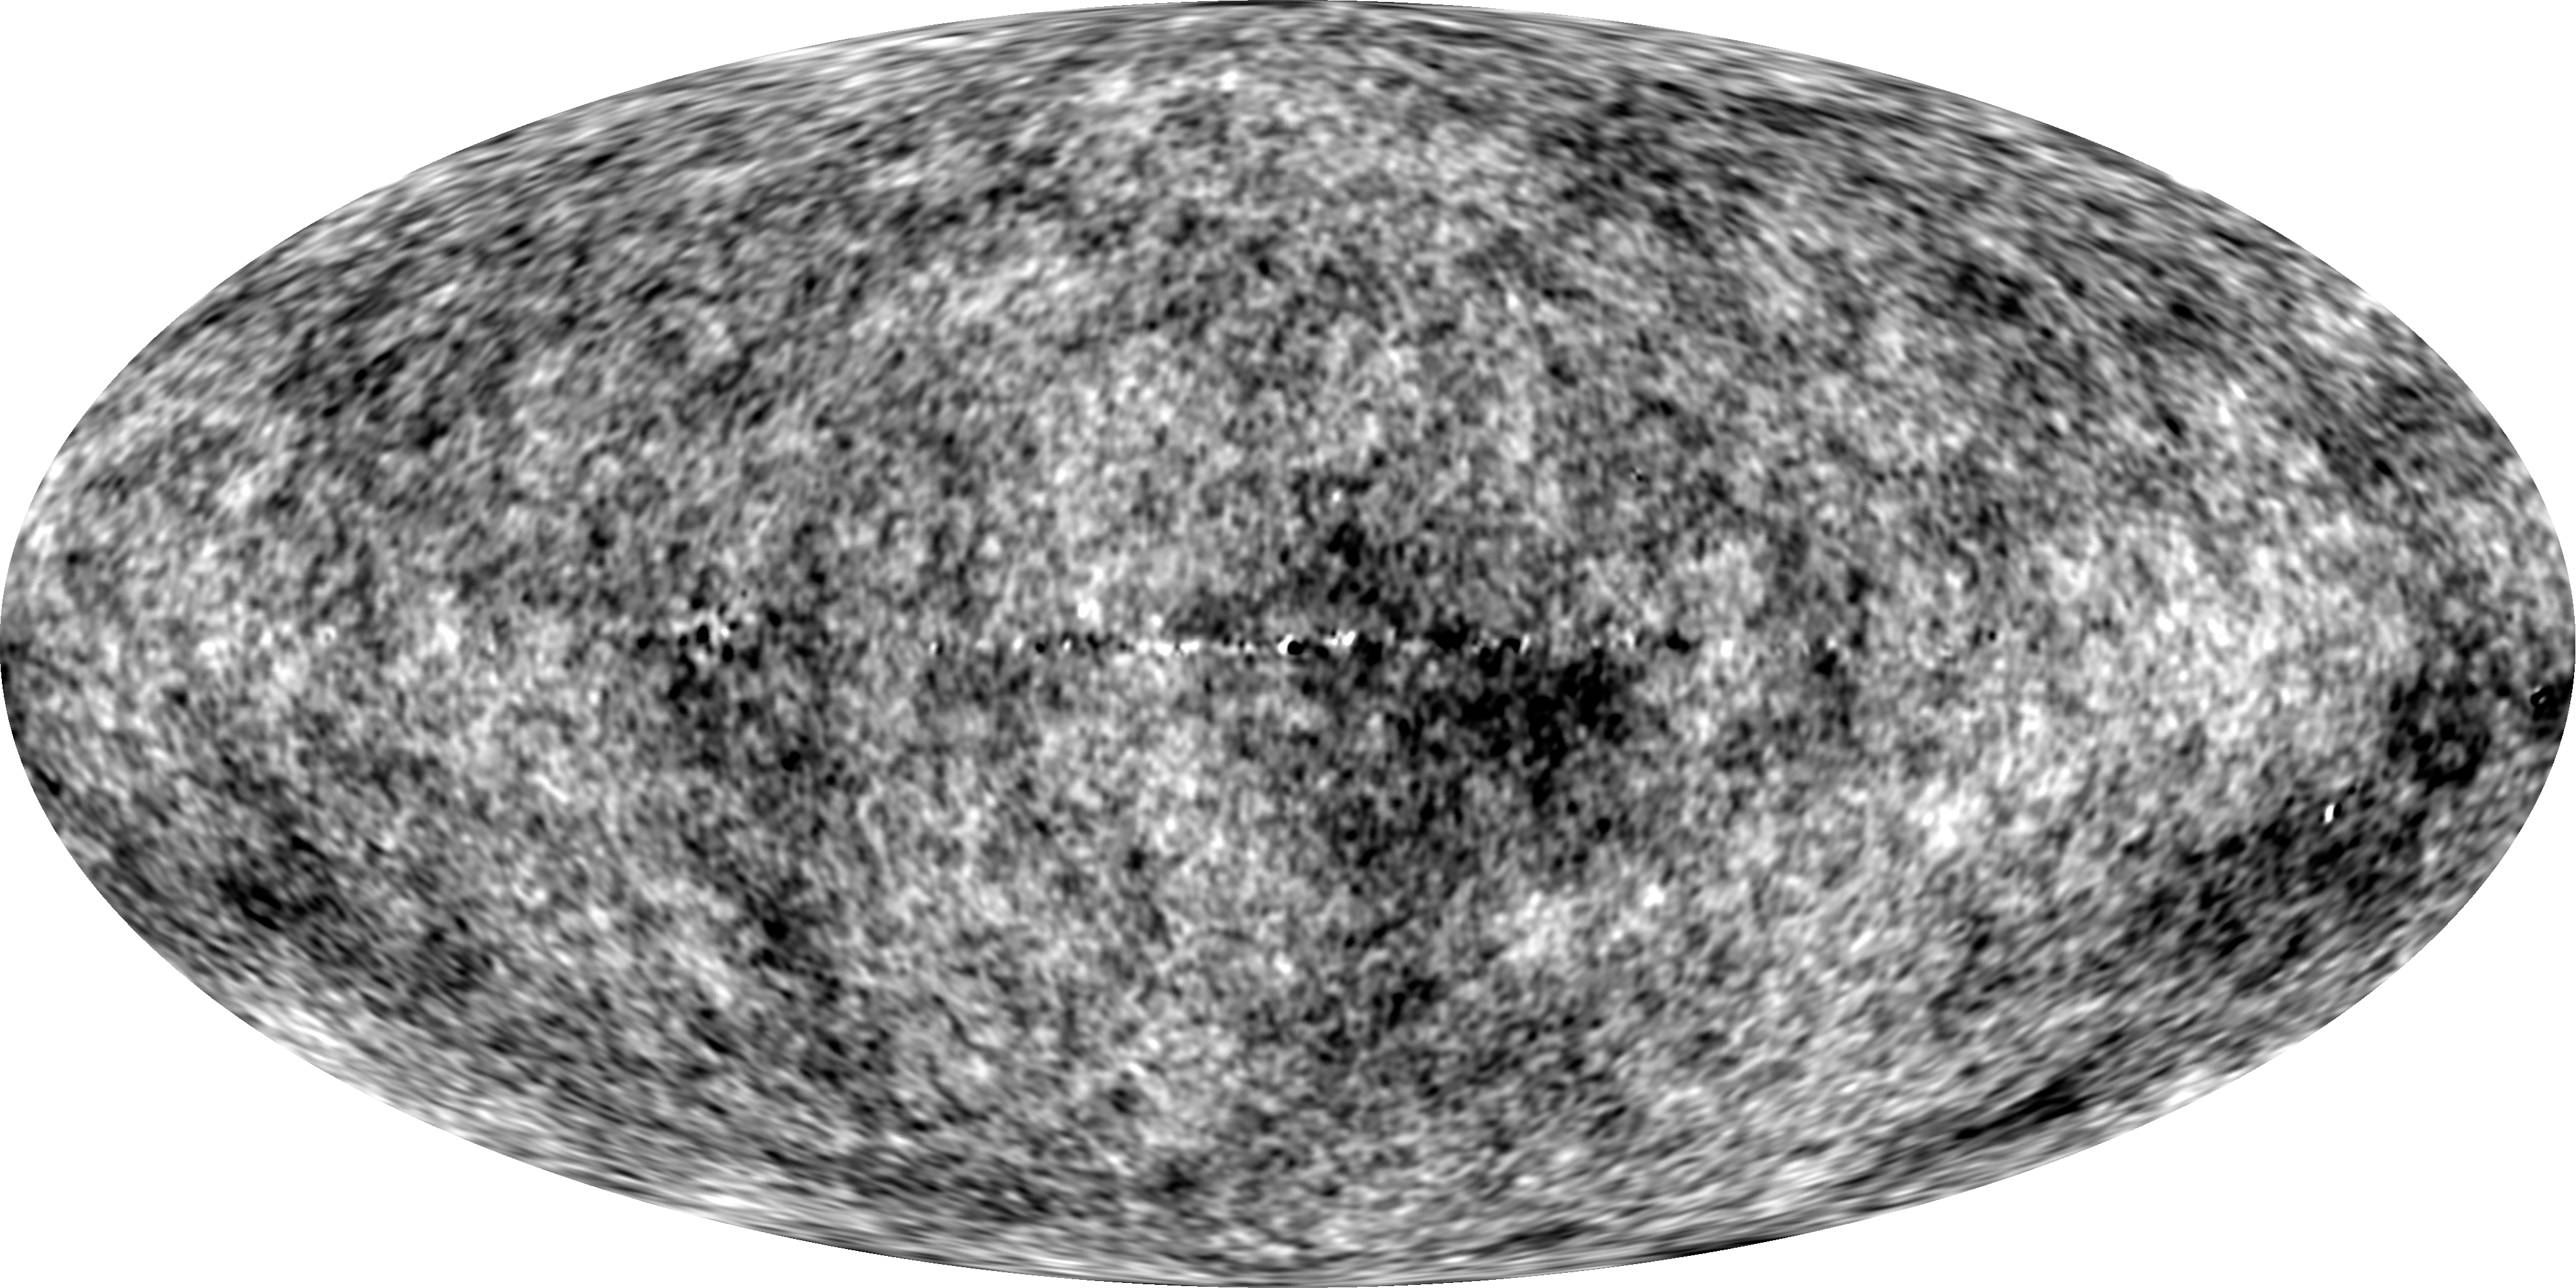 Seven Year Microwave Sky Image